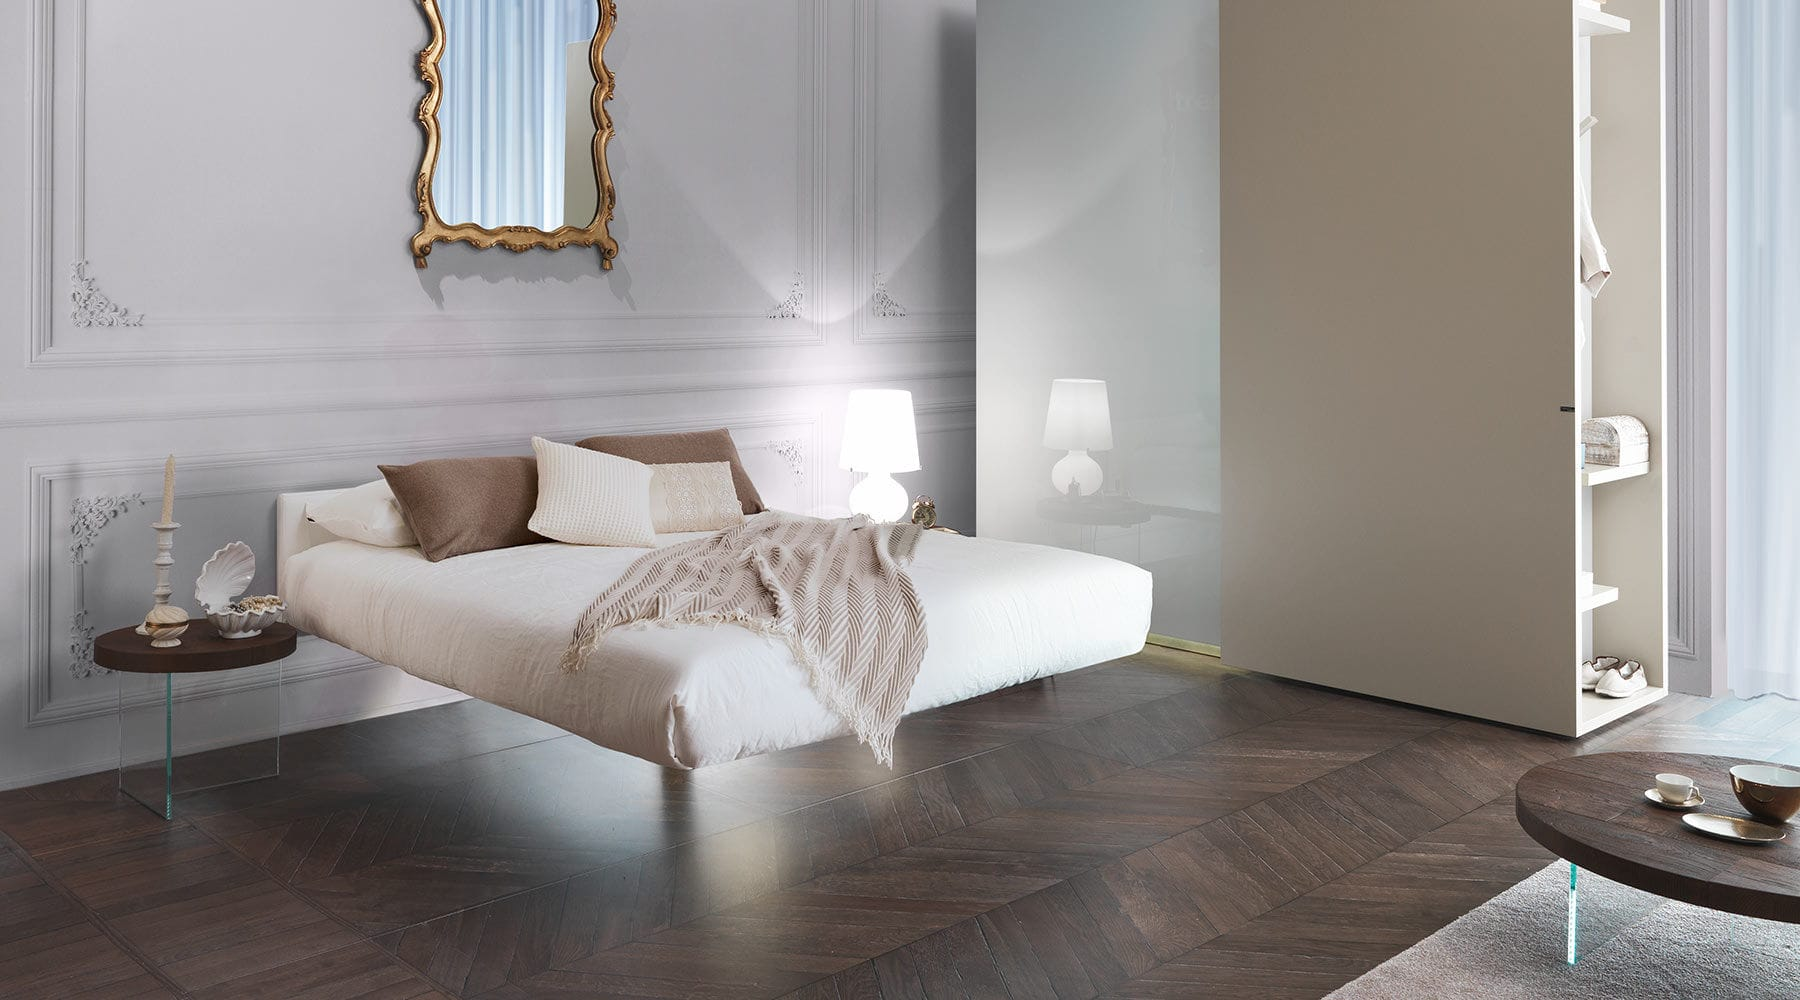 Double Bed Contemporary With Upholstered Headboard Fabric - Lago bed